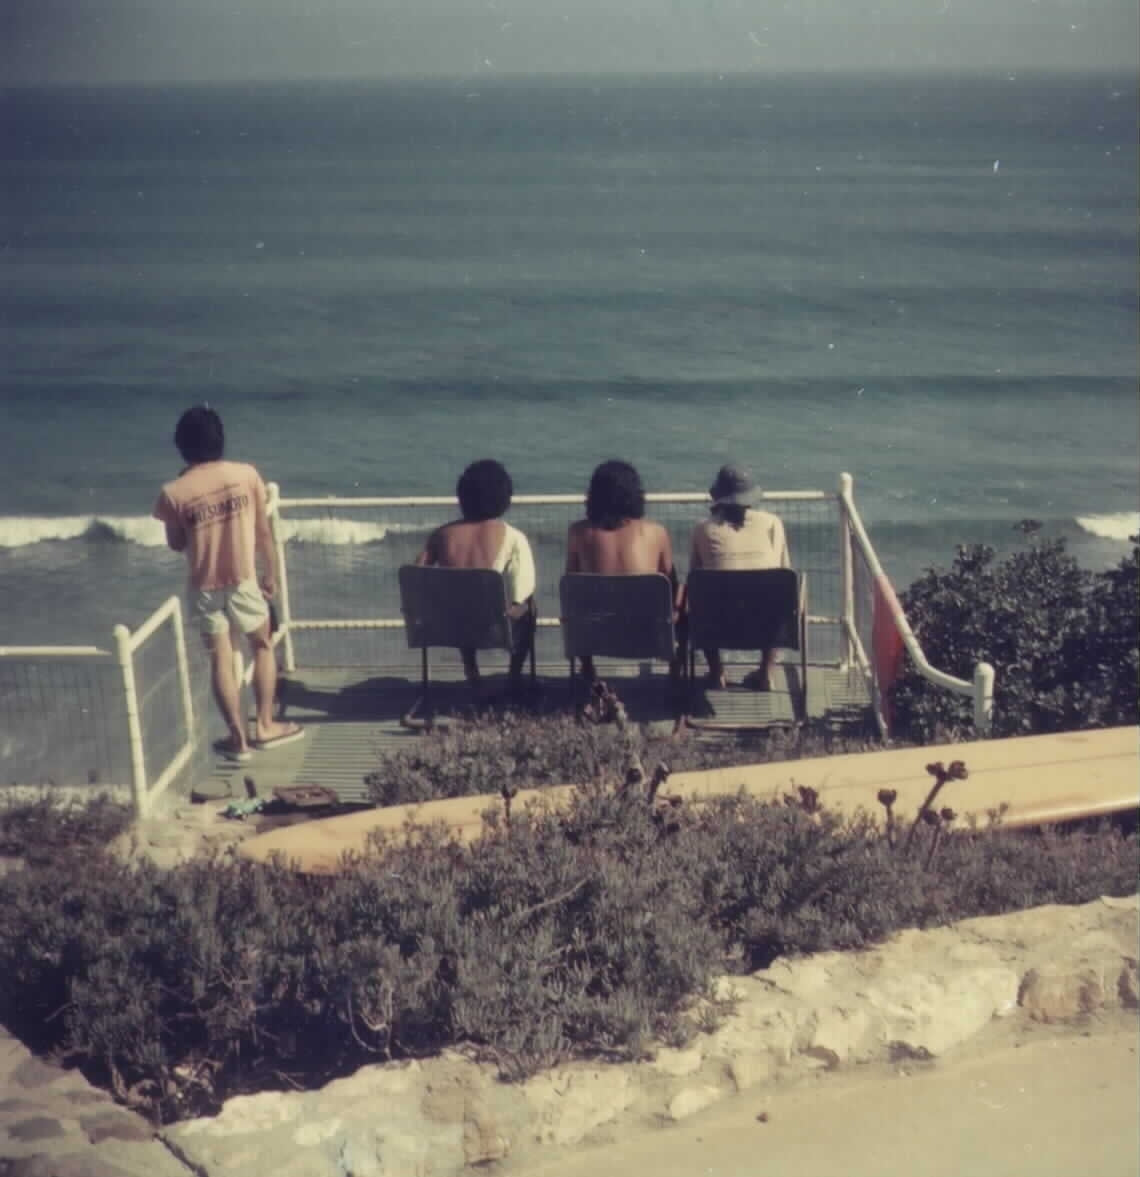 In Malibu: The Lookout